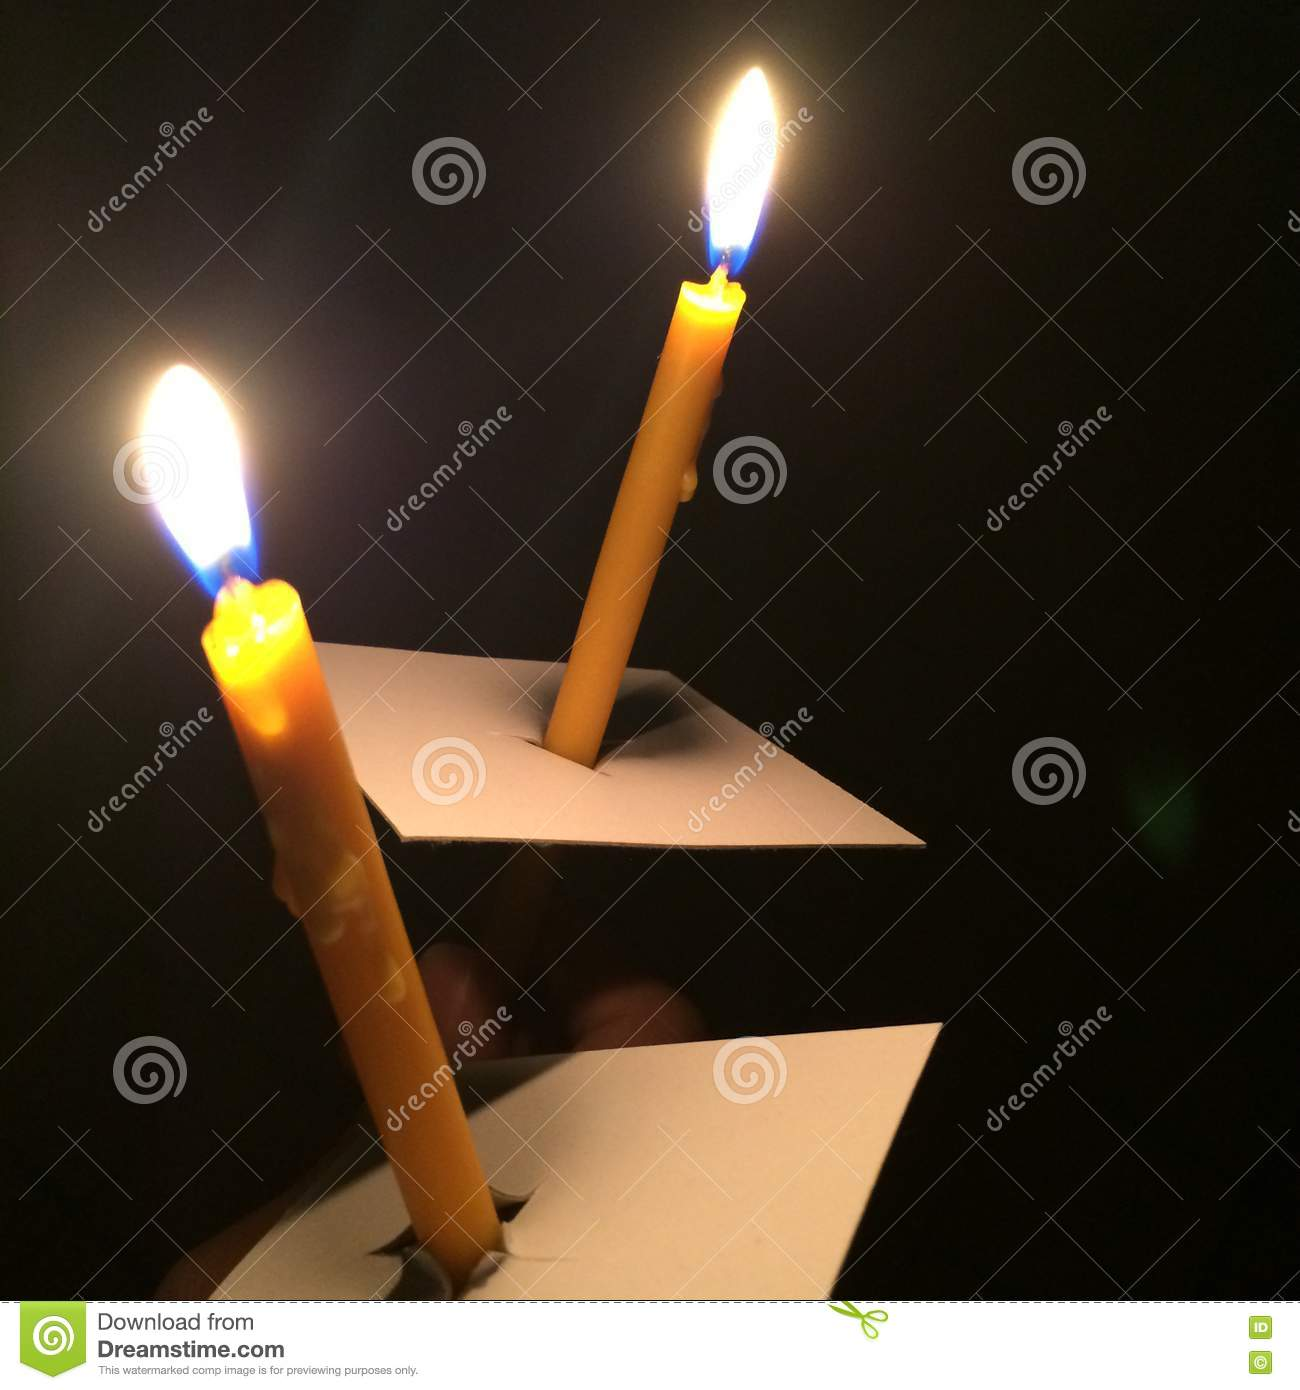 Holding 2 Lighting Candle In The Dark Stock Illustration ... for Holding Candle In The Dark  589hul